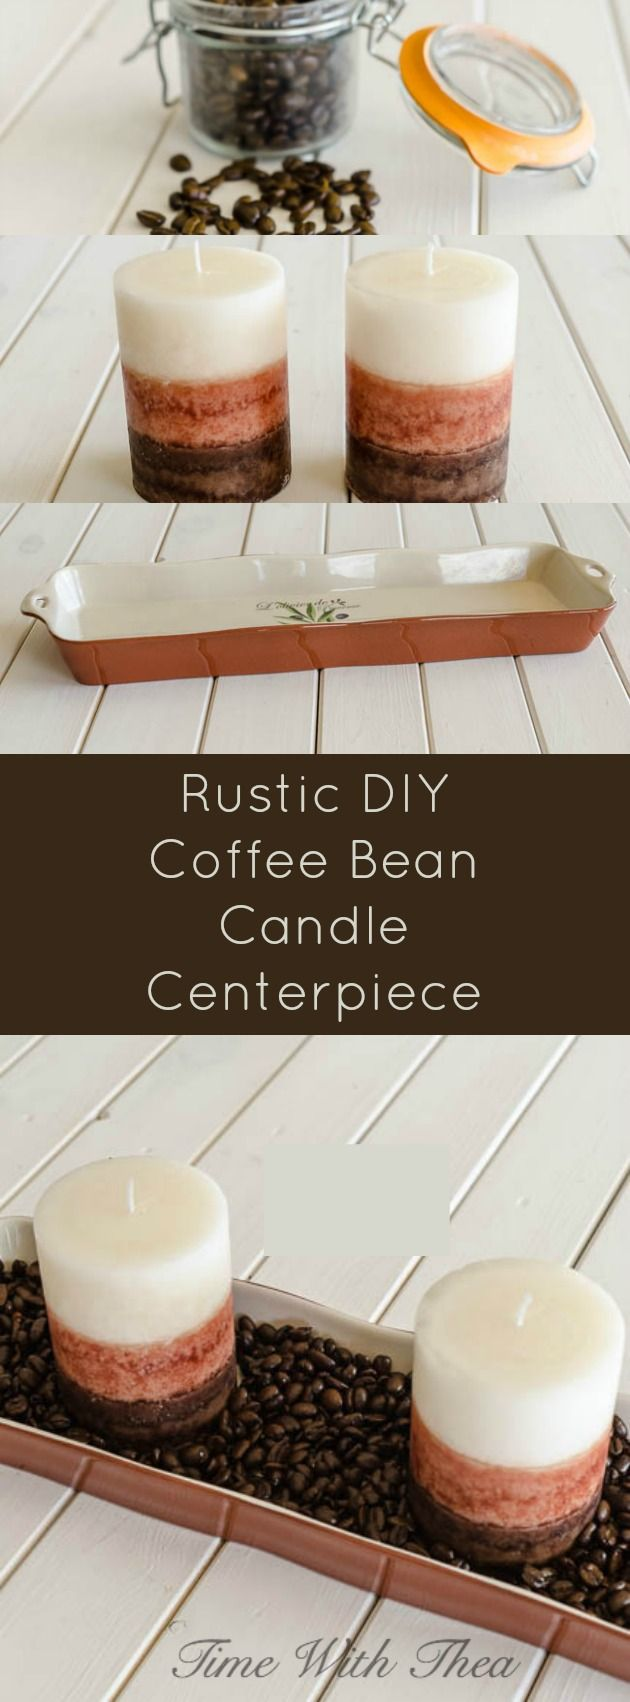 Coffee Bean Candle Centerpiece : Best ideas about coffee bean candle on pinterest